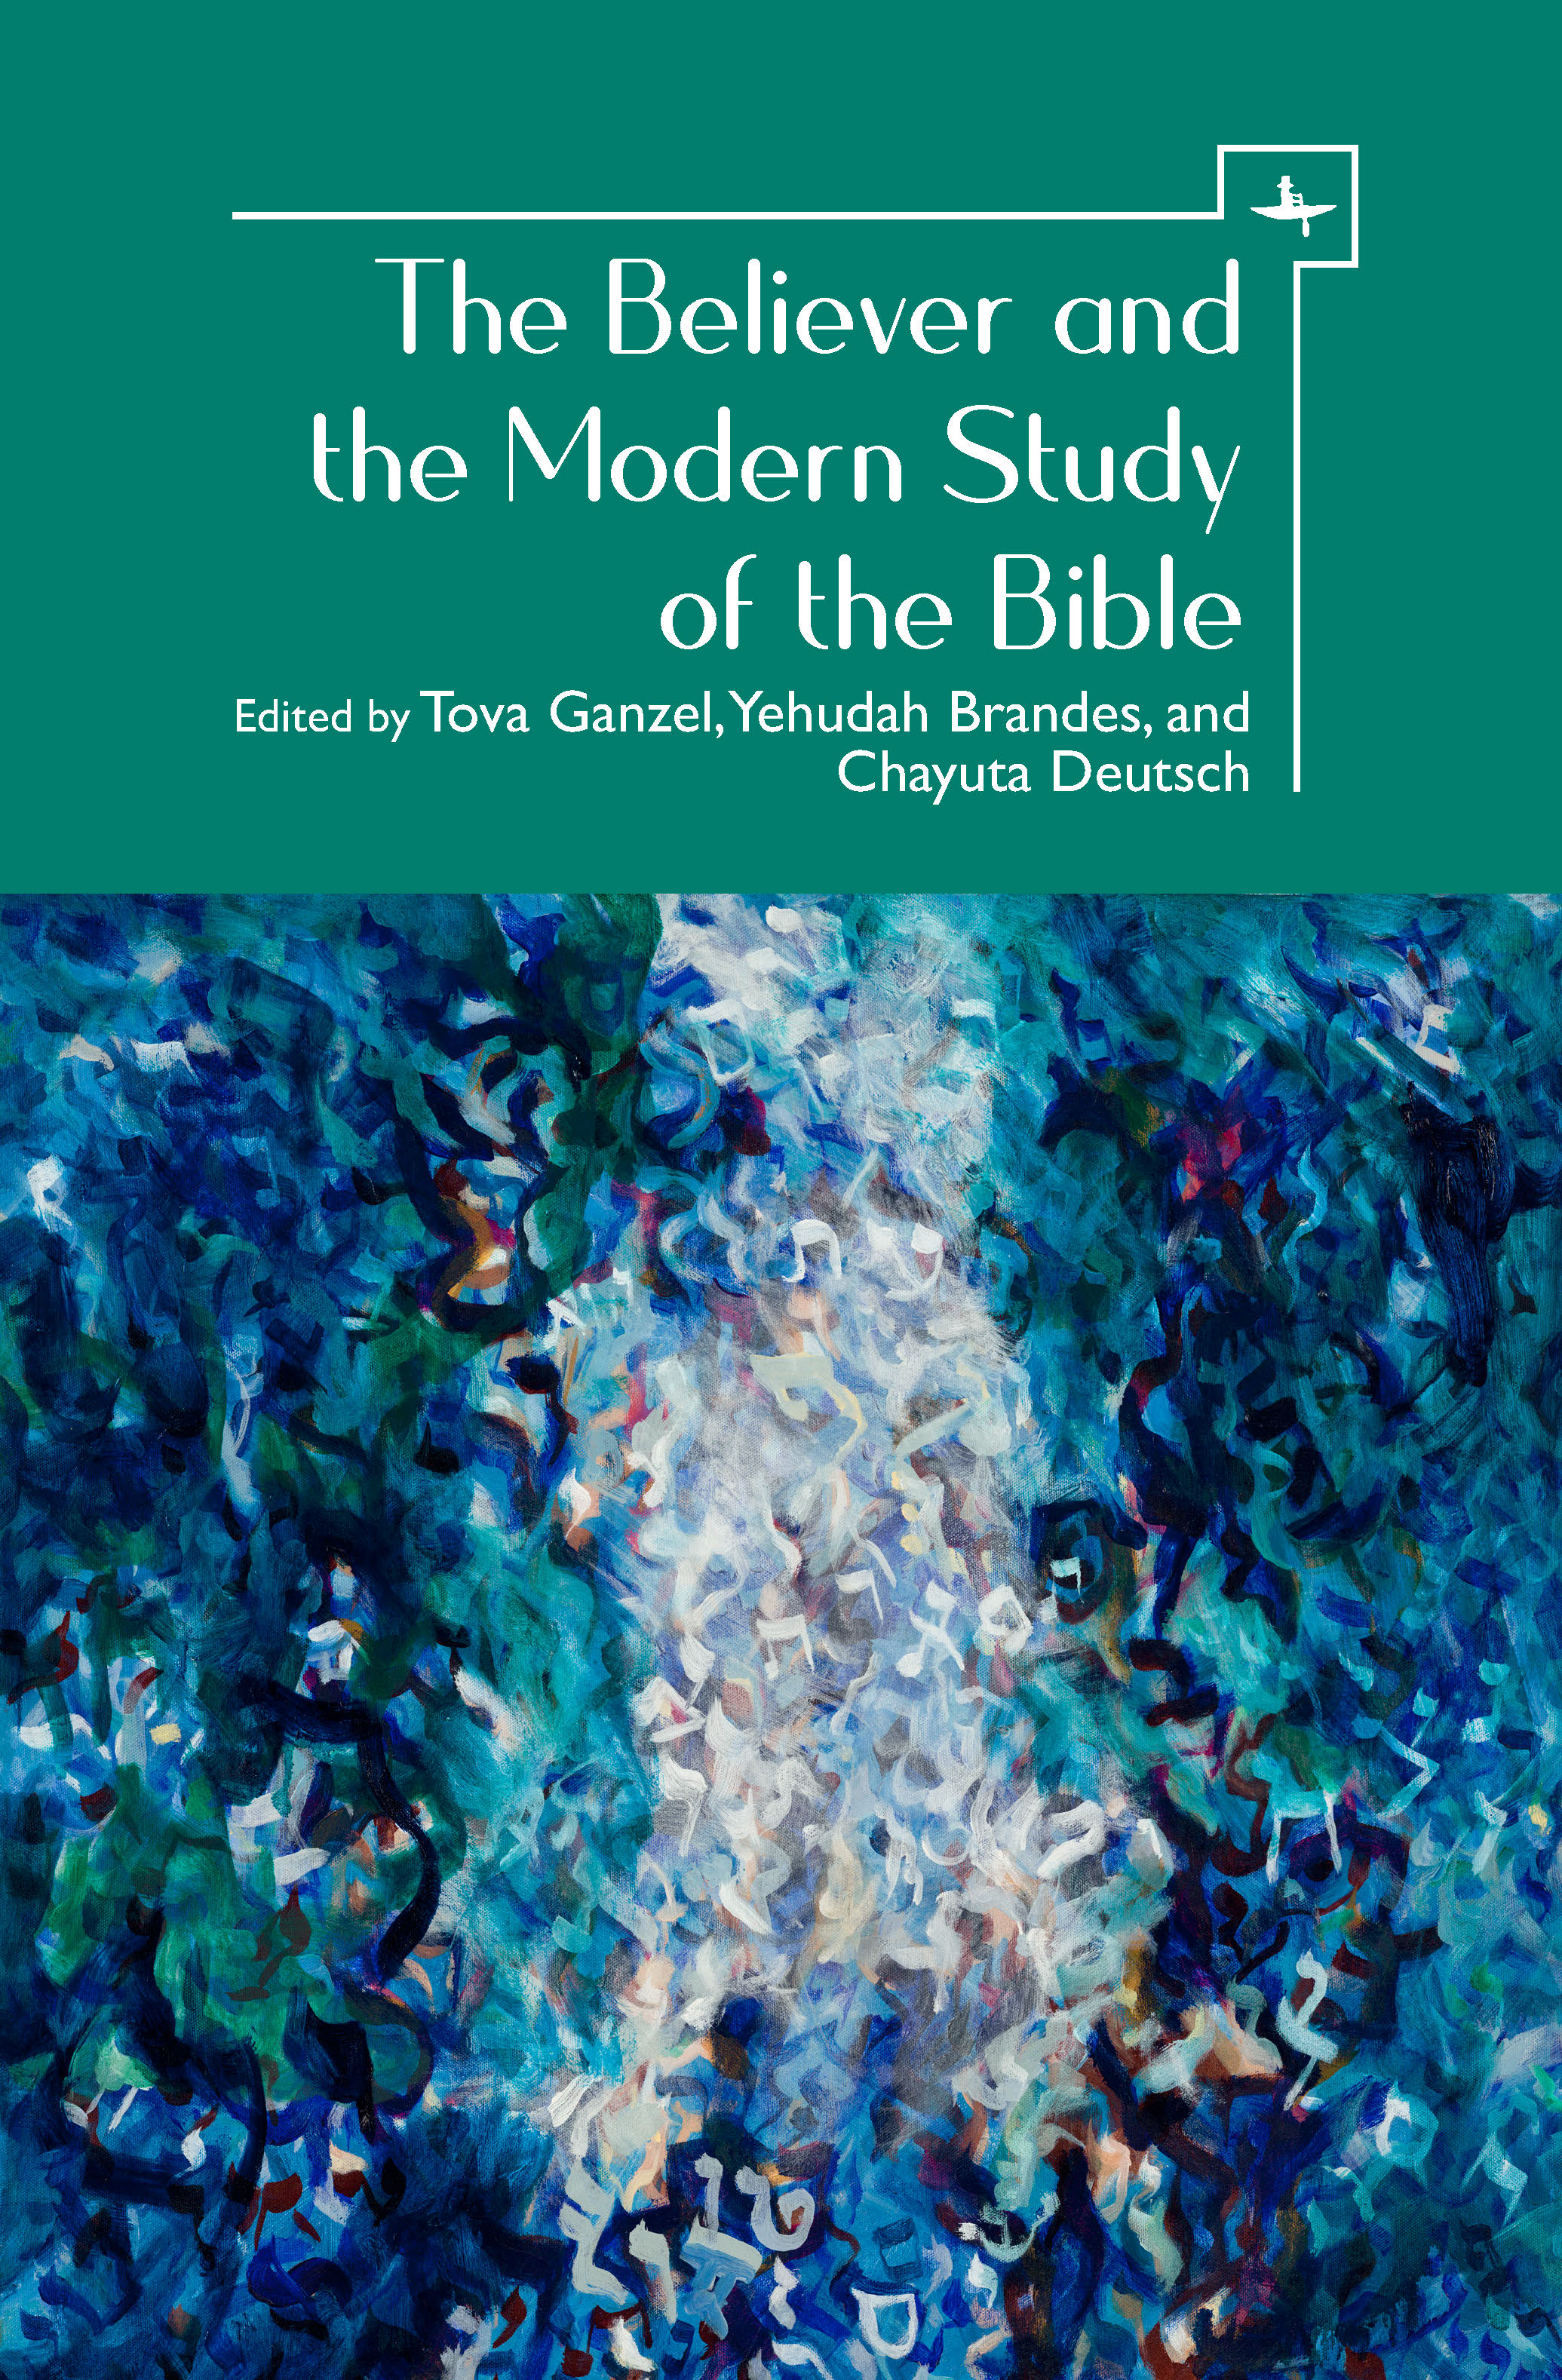 The Believer and the Modern Study of the Bible   Edited by  Tova Ganzel, Yehudah Brandes, and Chayuta Deutsch   Read on OAPEN  |  Purchase book